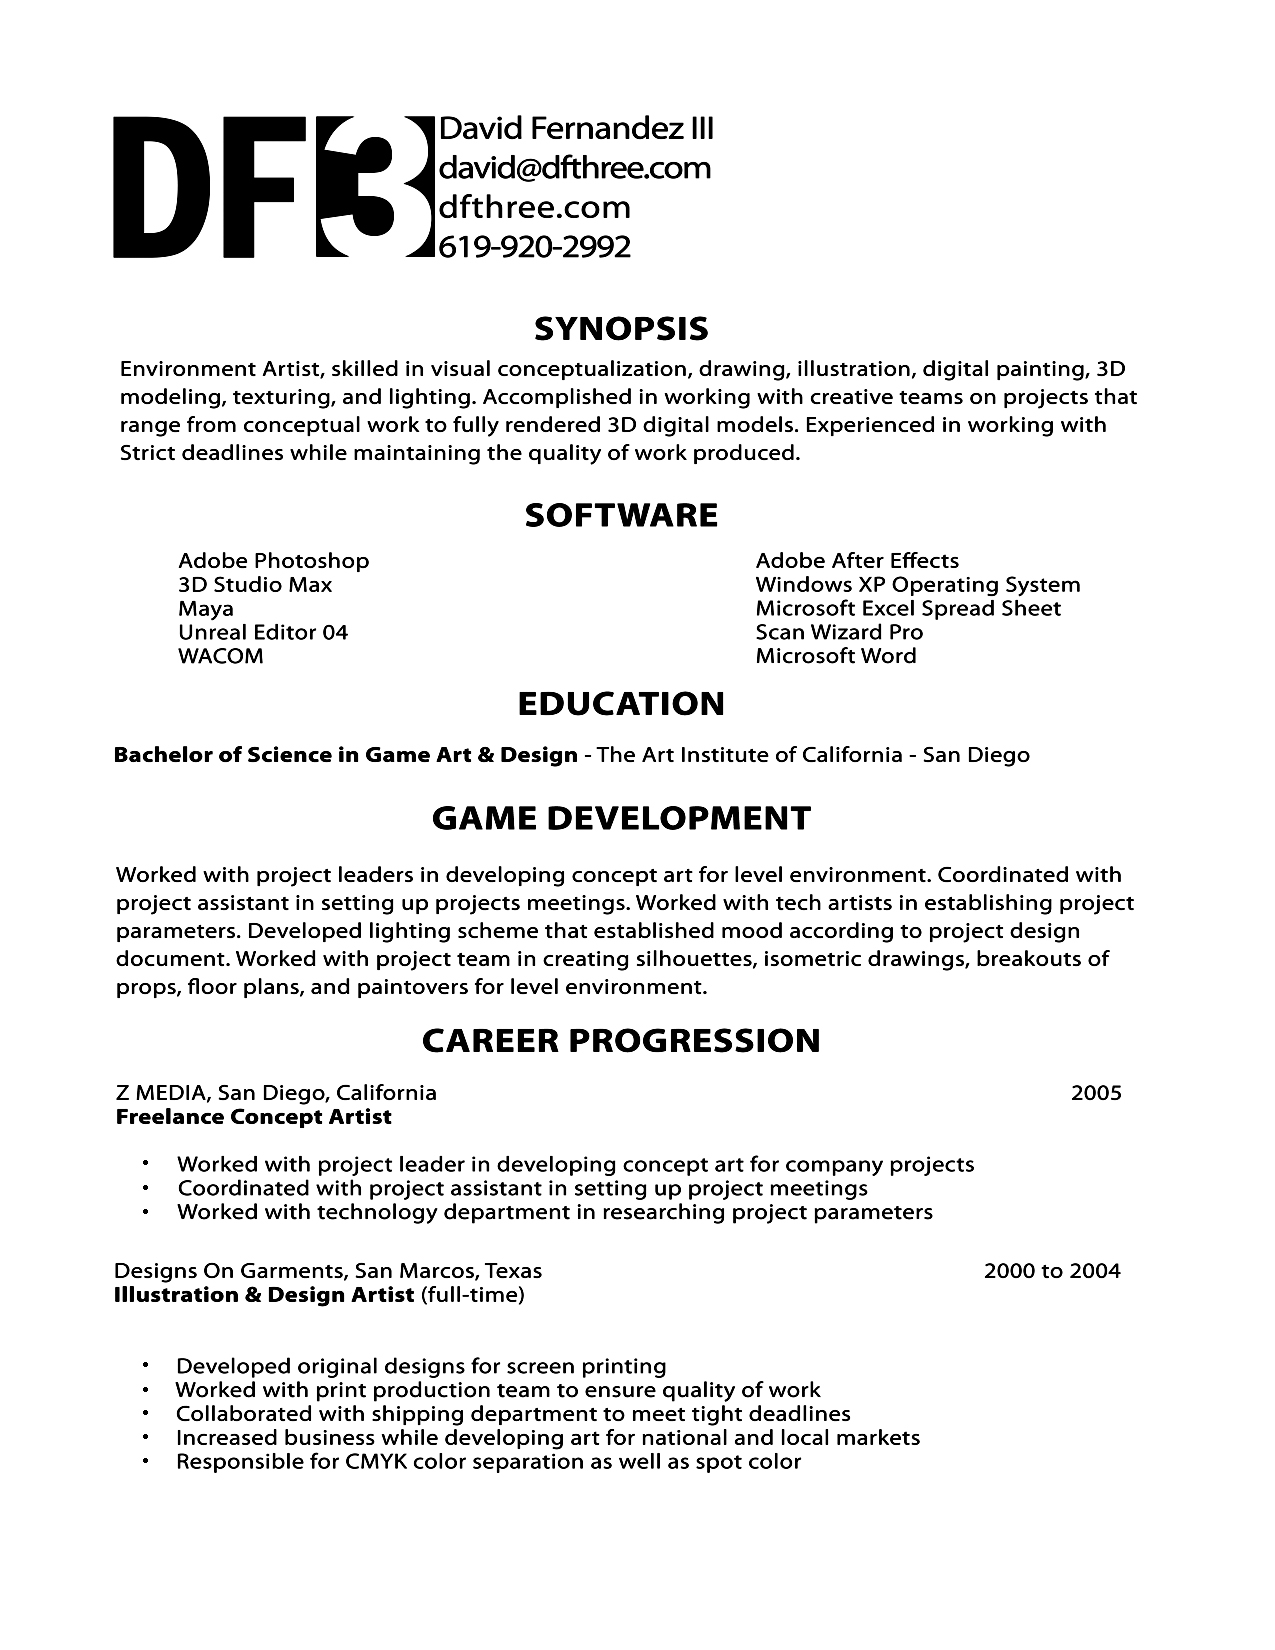 Opposenewapstandardsus  Wonderful Game Developer Resume Game Tester Resume Sample Game Tester  With Goodlooking Better Jobs Faster With Awesome Chauffeur Resume Also Results Driven Resume In Addition Nanny Responsibilities Resume And Online Resume Services As Well As Tow Truck Driver Resume Additionally Should A Resume Include References From Kelseymarieco With Opposenewapstandardsus  Goodlooking Game Developer Resume Game Tester Resume Sample Game Tester  With Awesome Better Jobs Faster And Wonderful Chauffeur Resume Also Results Driven Resume In Addition Nanny Responsibilities Resume From Kelseymarieco